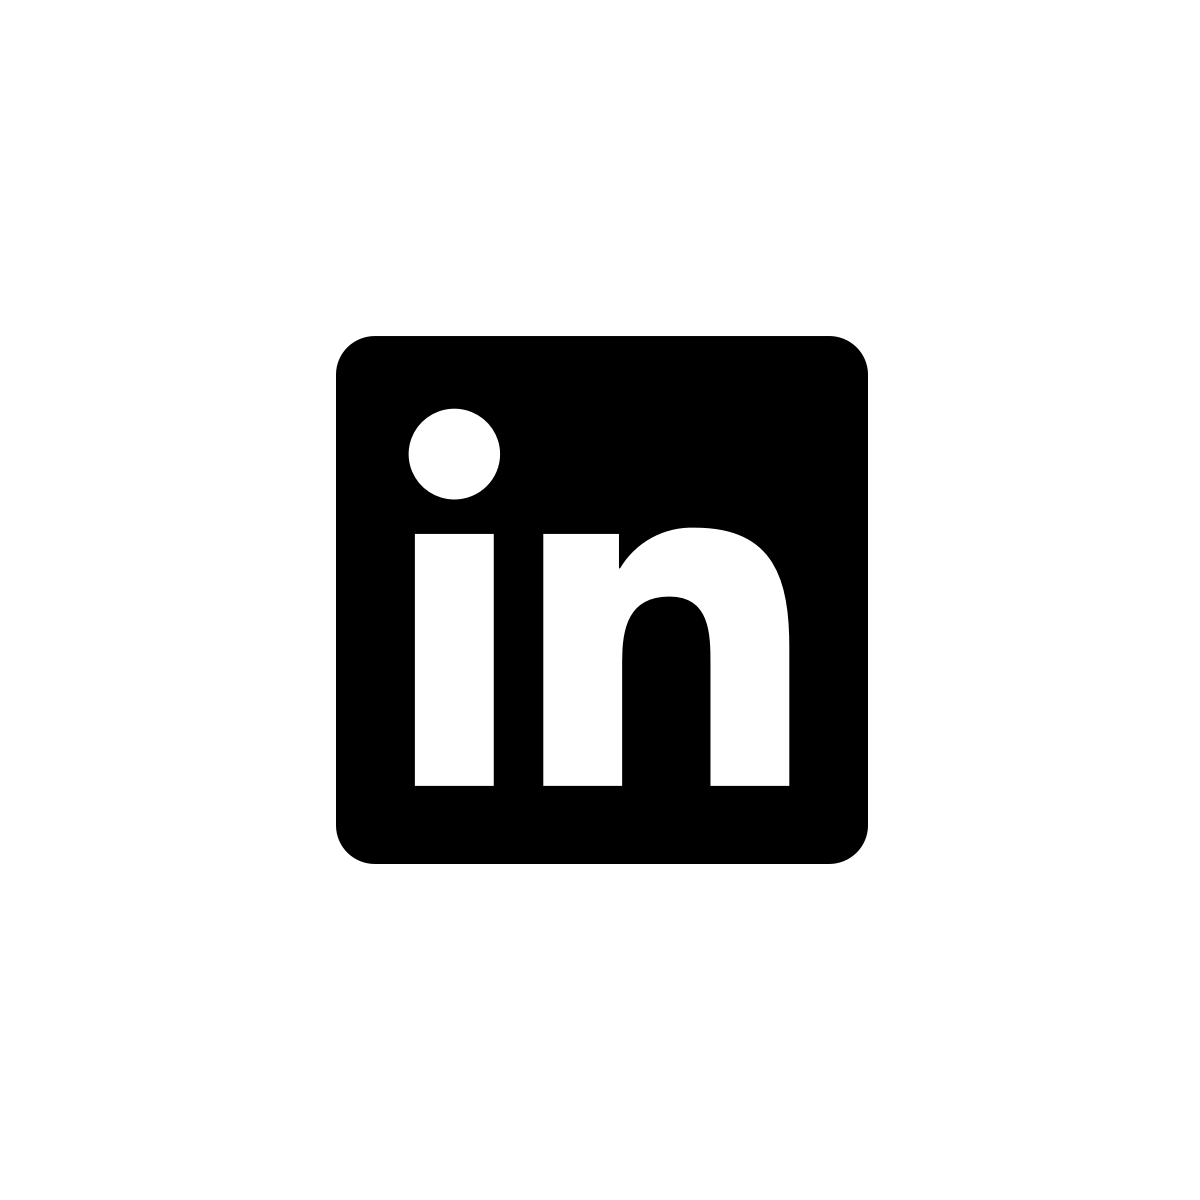 Photo of LinkedIn icon